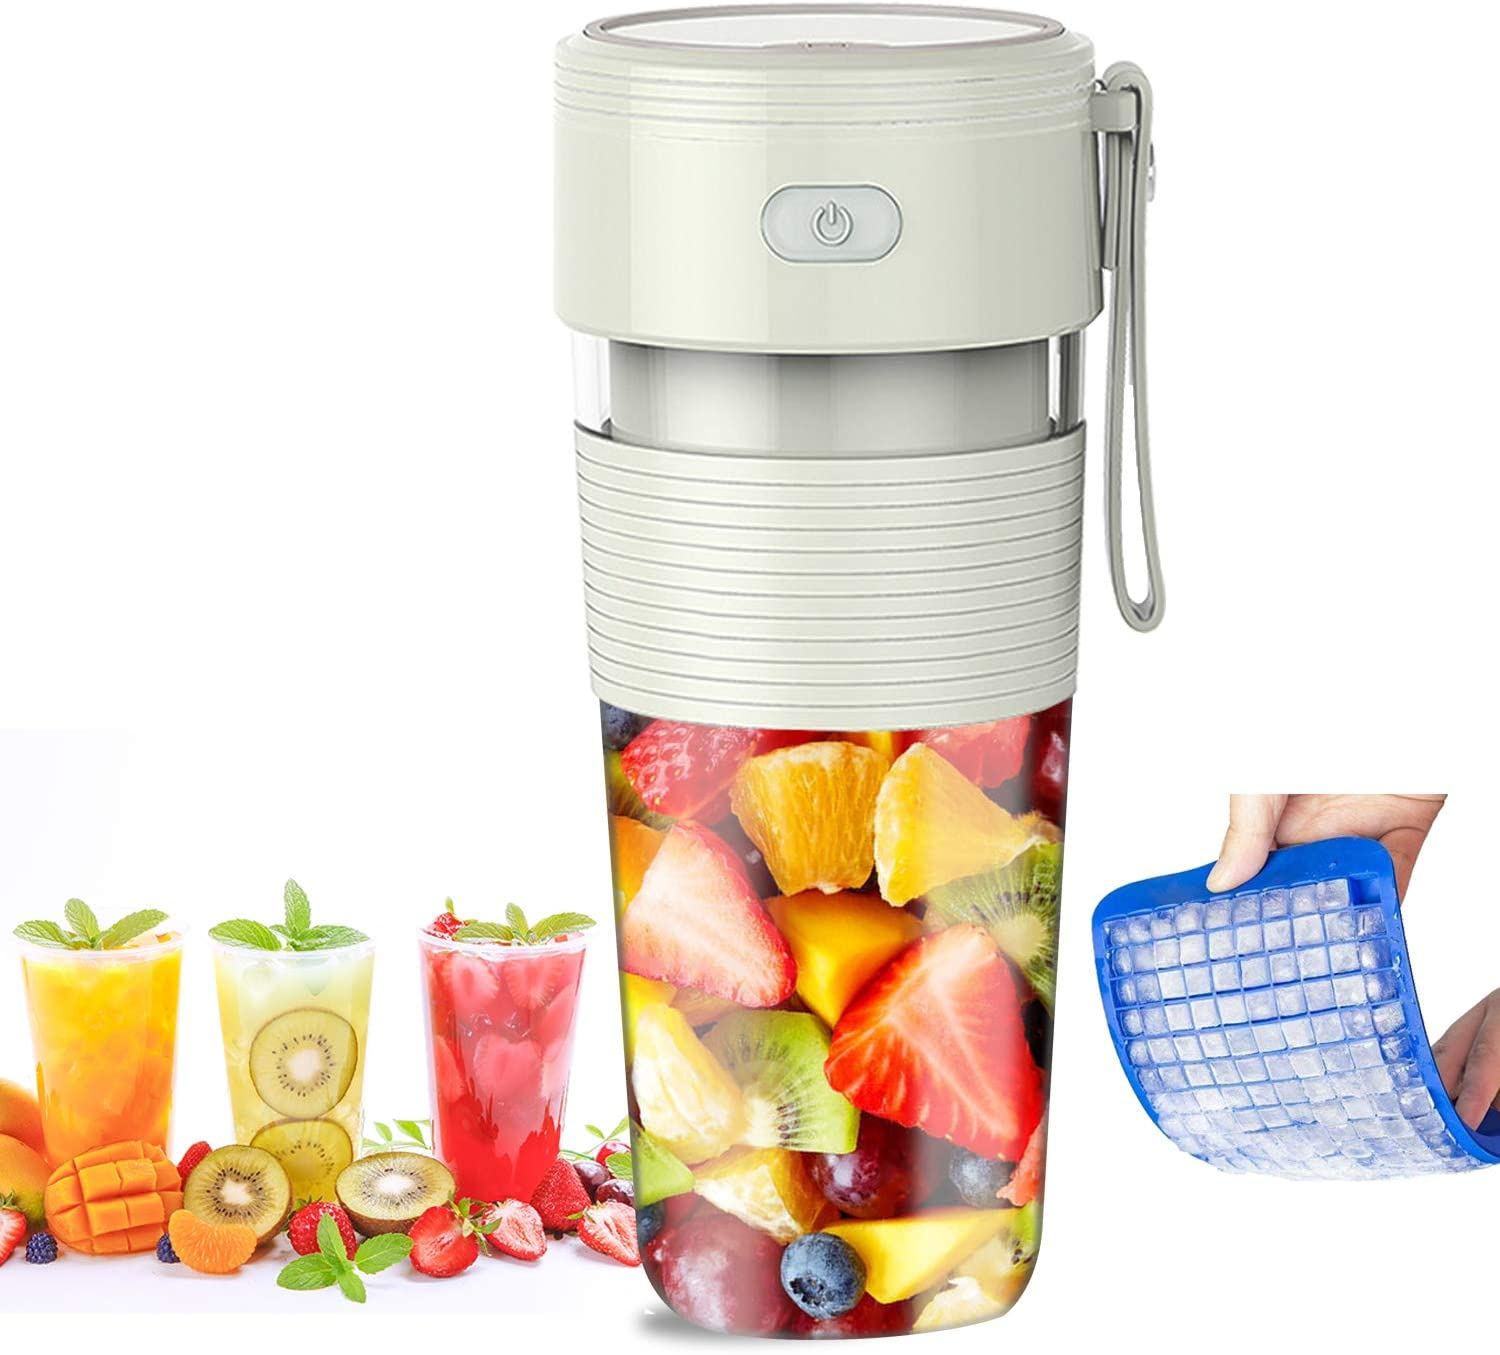 Portable Blender for Juice, Personal Size Blender Cup for Shakes and Smoothies Juicer Cup with USB Rechargeable Mini Blender 300ML 10oz Personal Blender for Home Travel Office Outdoor